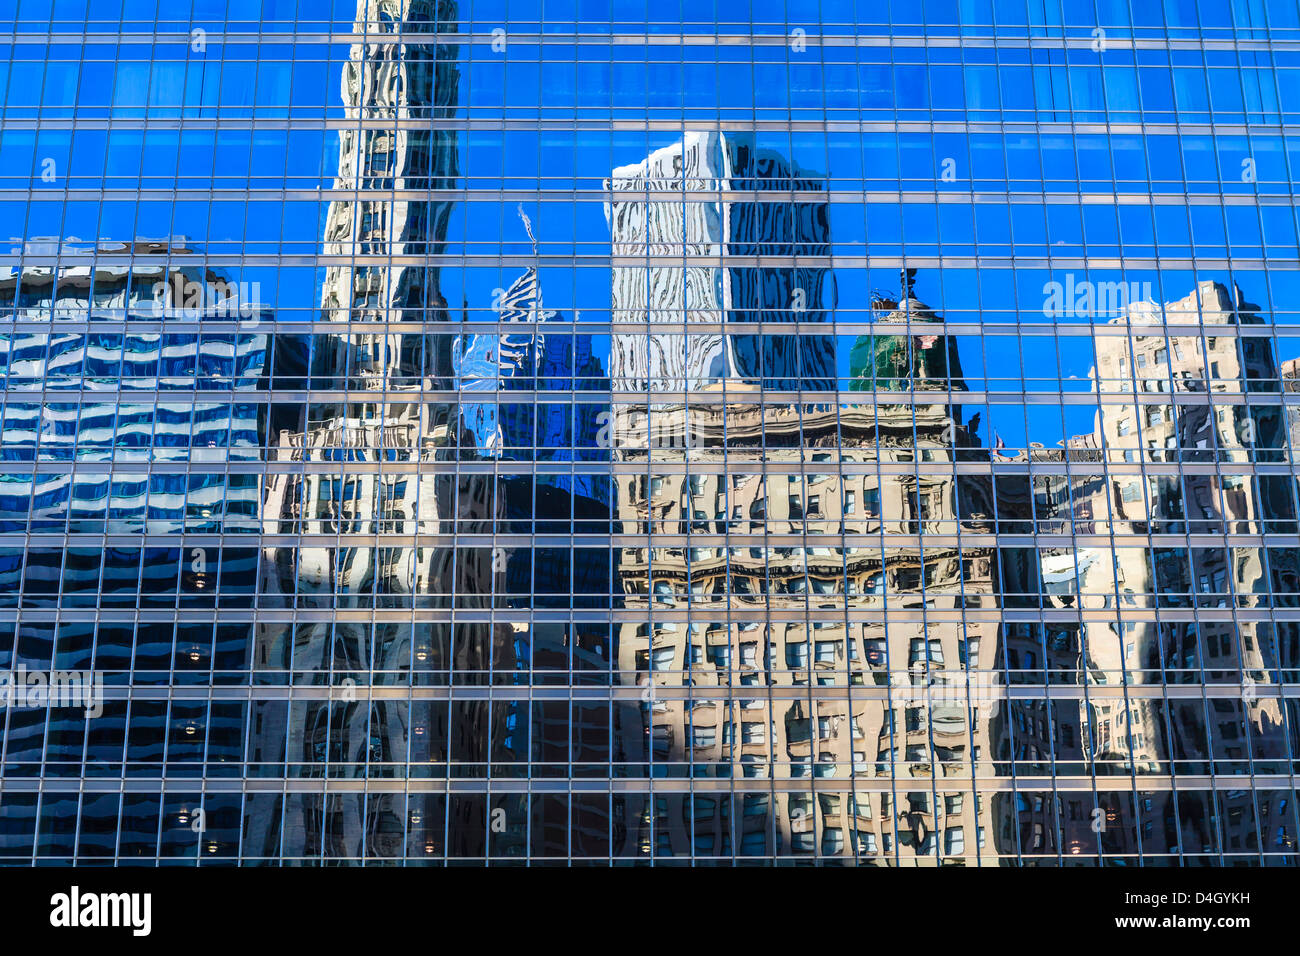 Buildings on West Wacker Drive reflected in the Trump Tower, Chicago, Illinois, USA - Stock Image